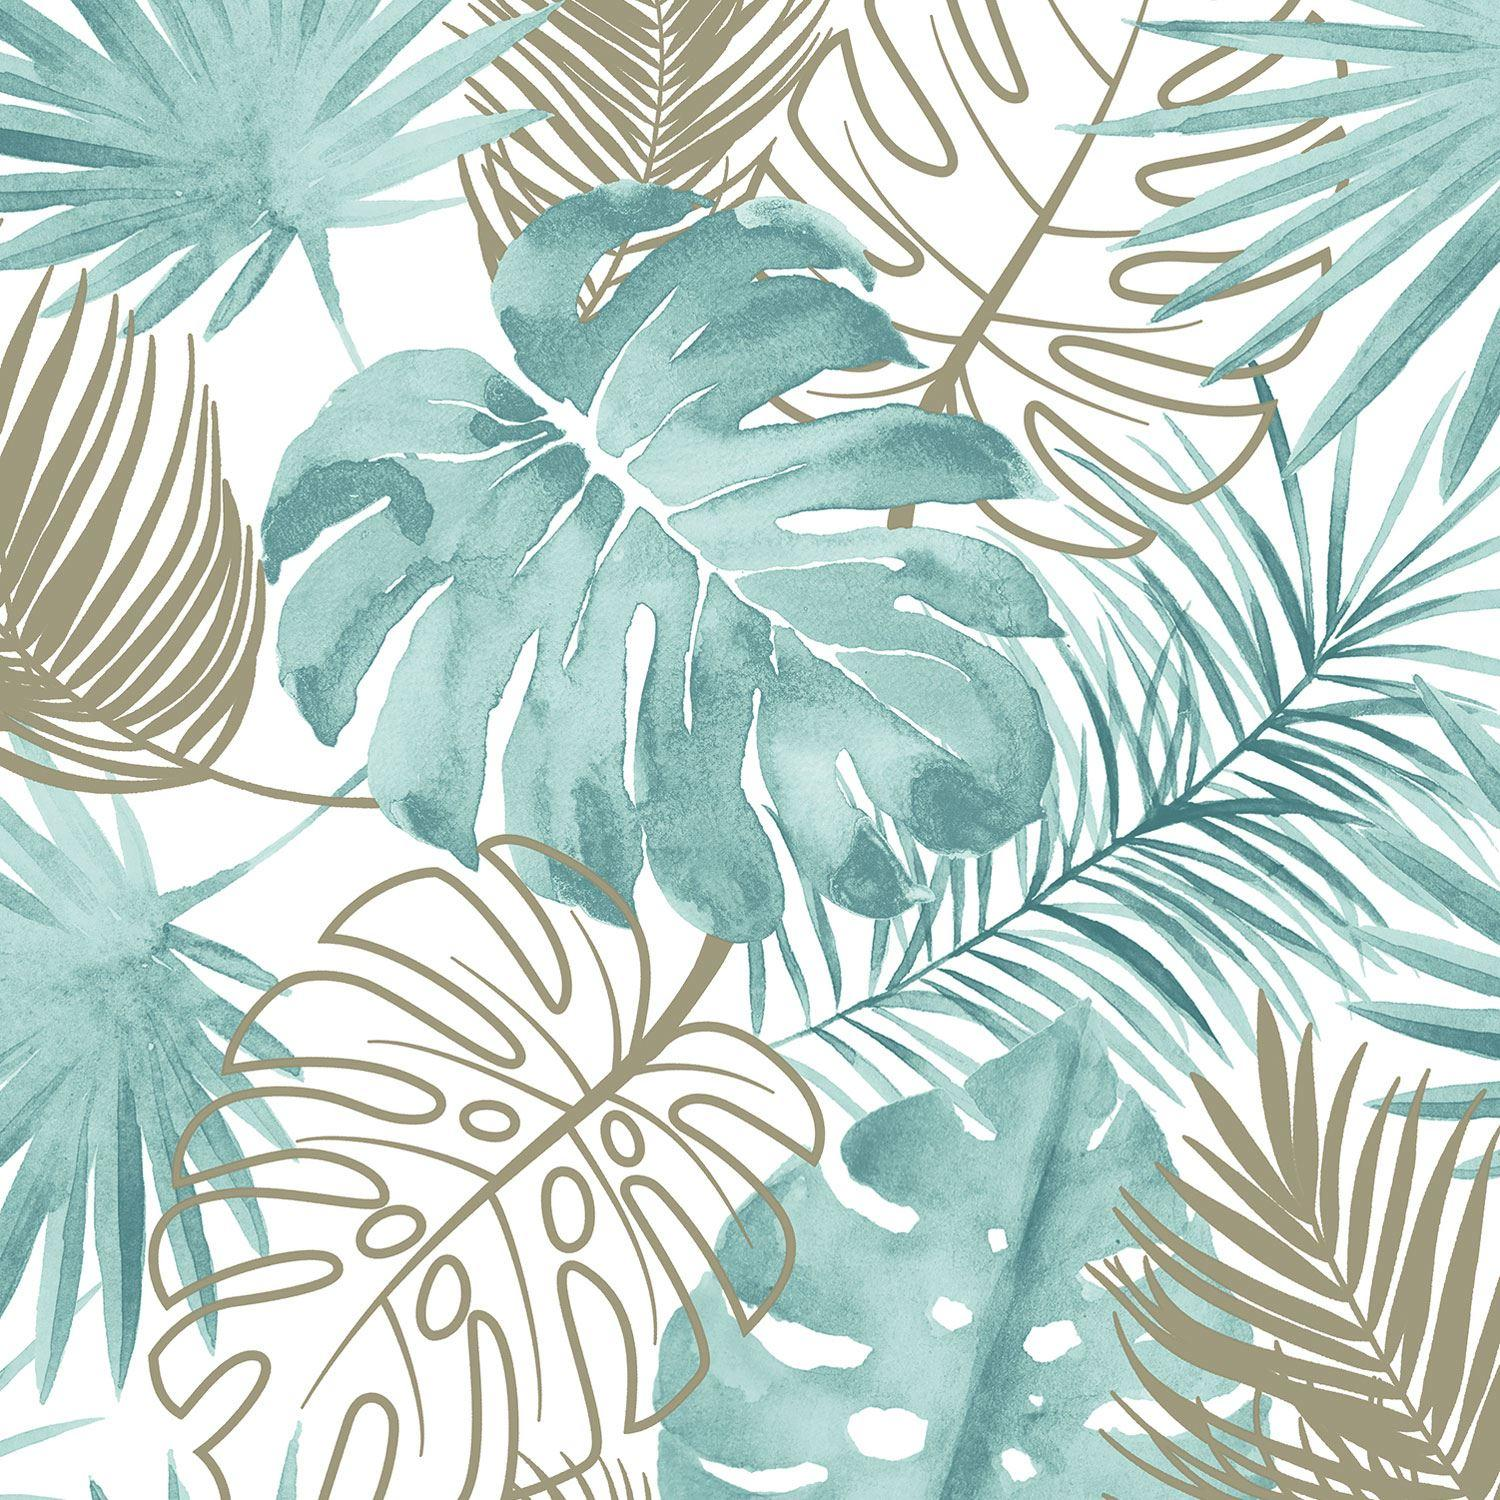 Tropical Leaves Wallpaper Leaves Wallpaper Tropical 2842802 Hd Wallpaper Backgrounds Download If you're in search of the best tropical beach wallpaper, you've come to the right place. tropical leaves wallpaper leaves